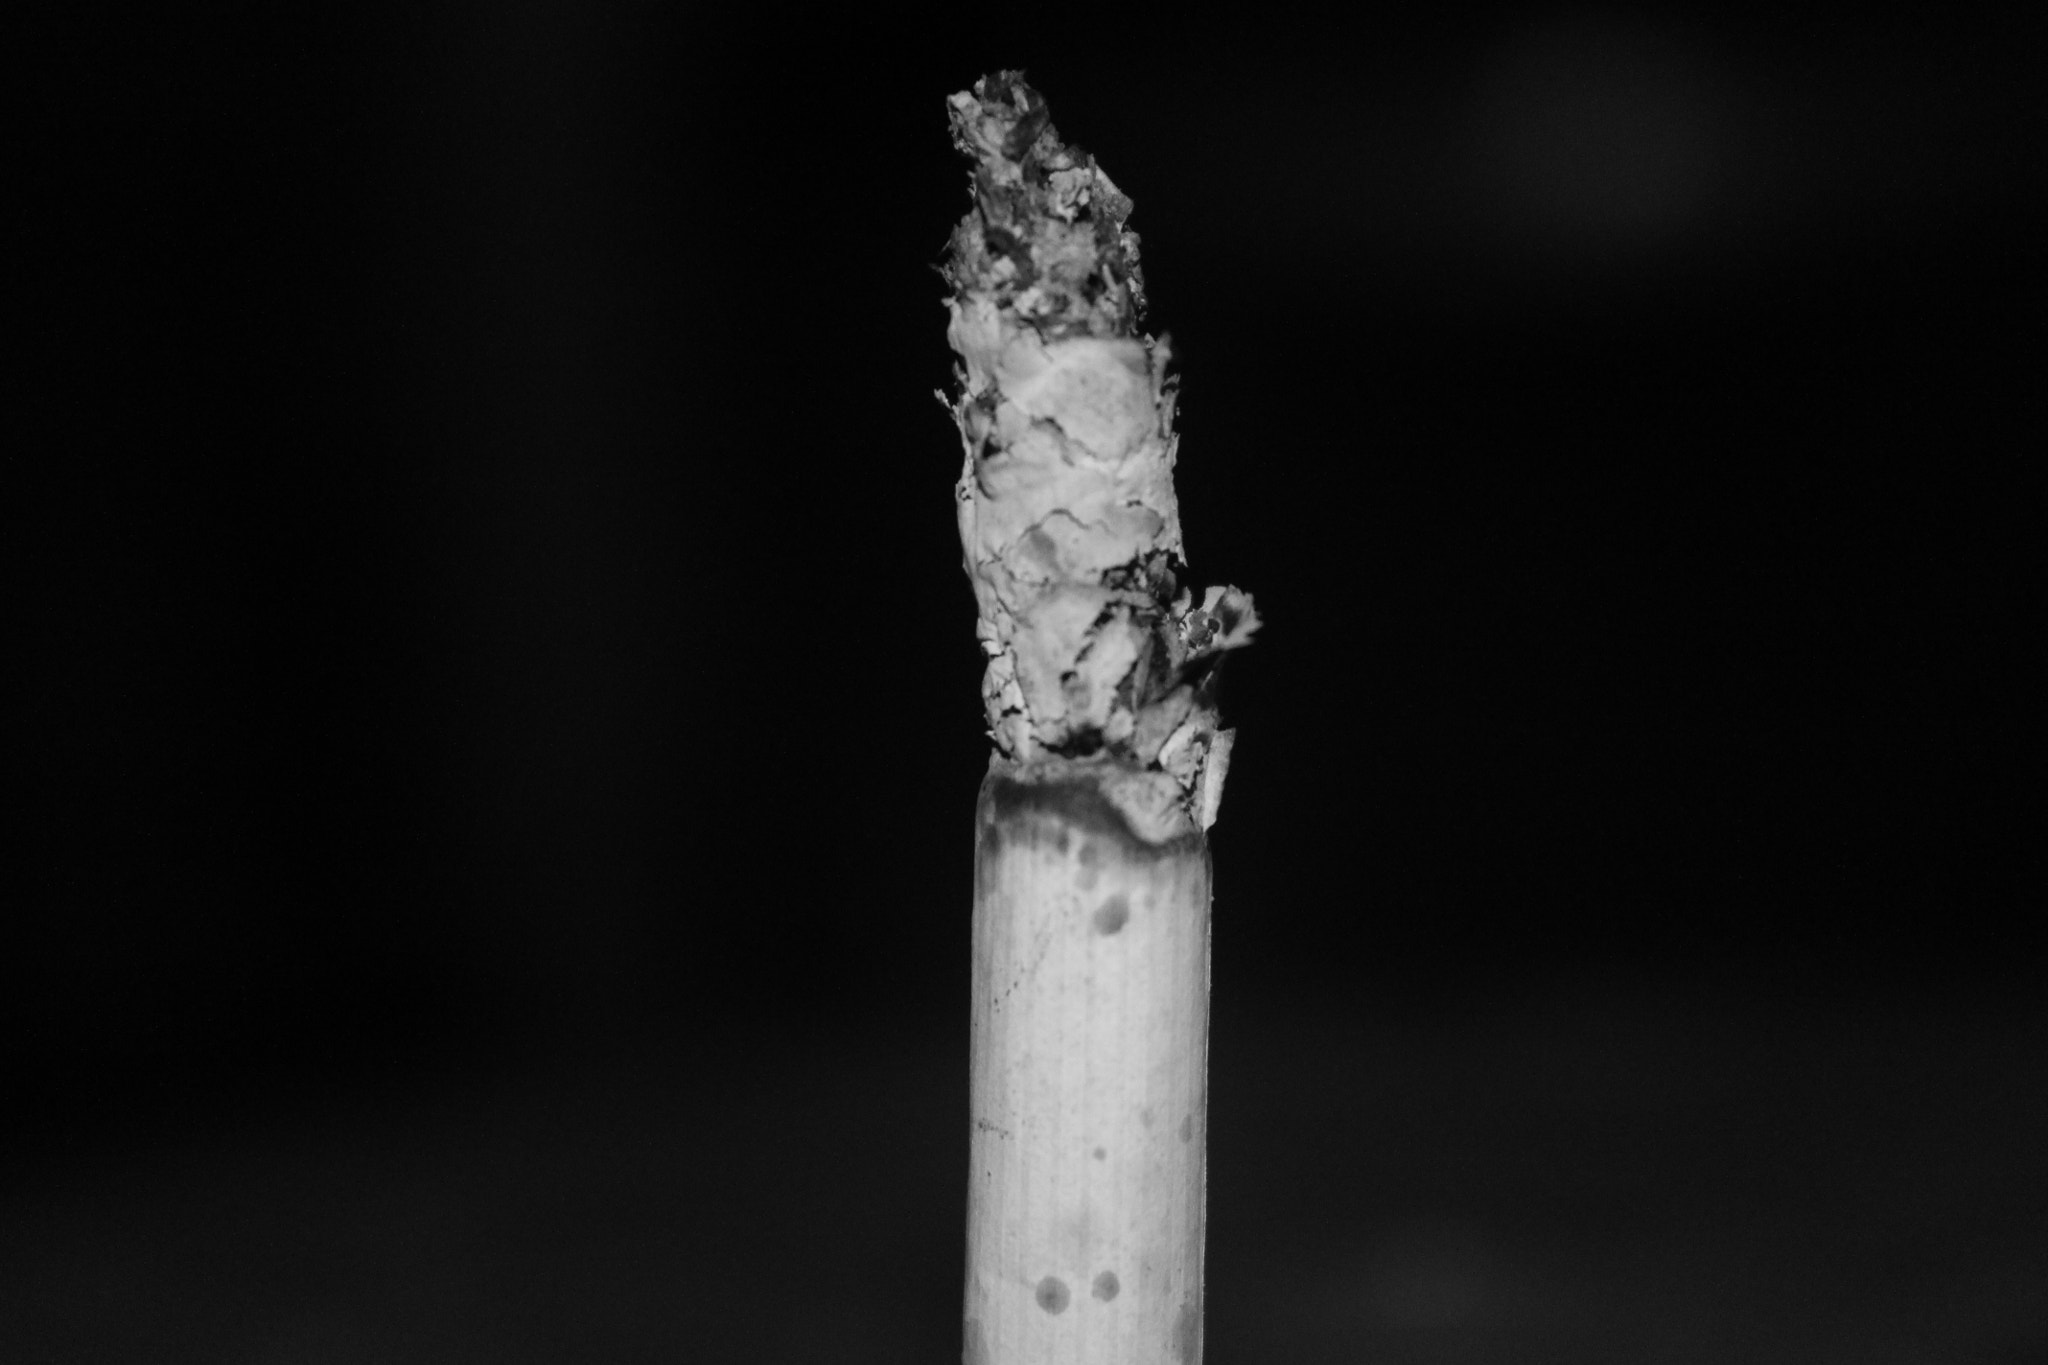 Photograph cigarette butt by Sastra Nababan on 500px